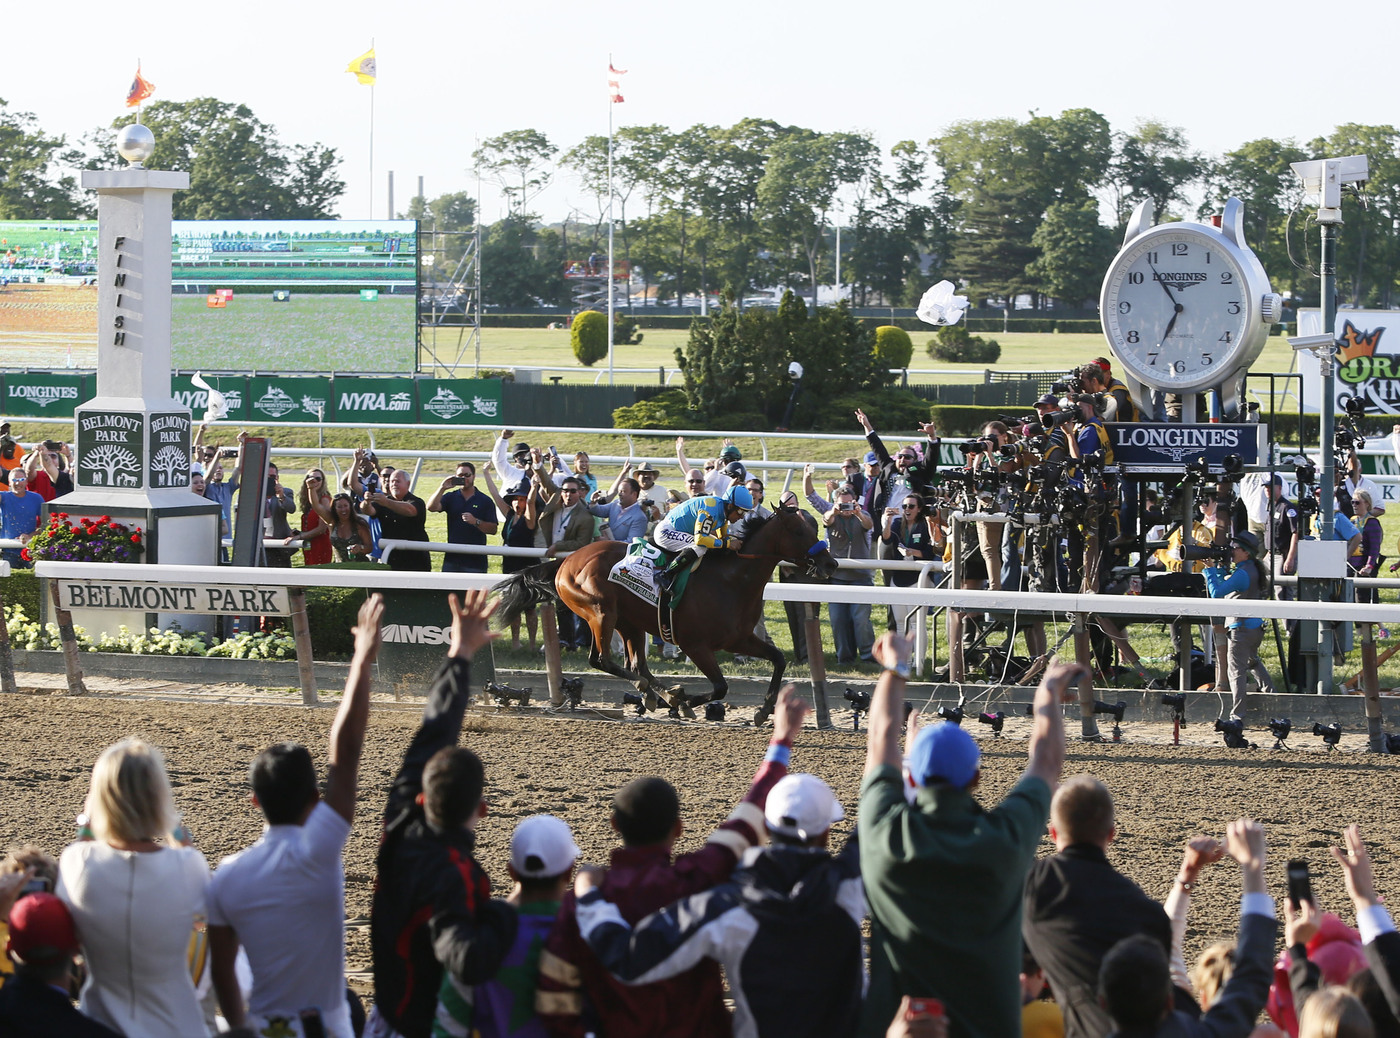 Longines Flat Racing Event: LONGINES TIMES AMERICAN PHAROAH'S TRIPLE CROWN VICTORY AT BELMONT STAKES 5